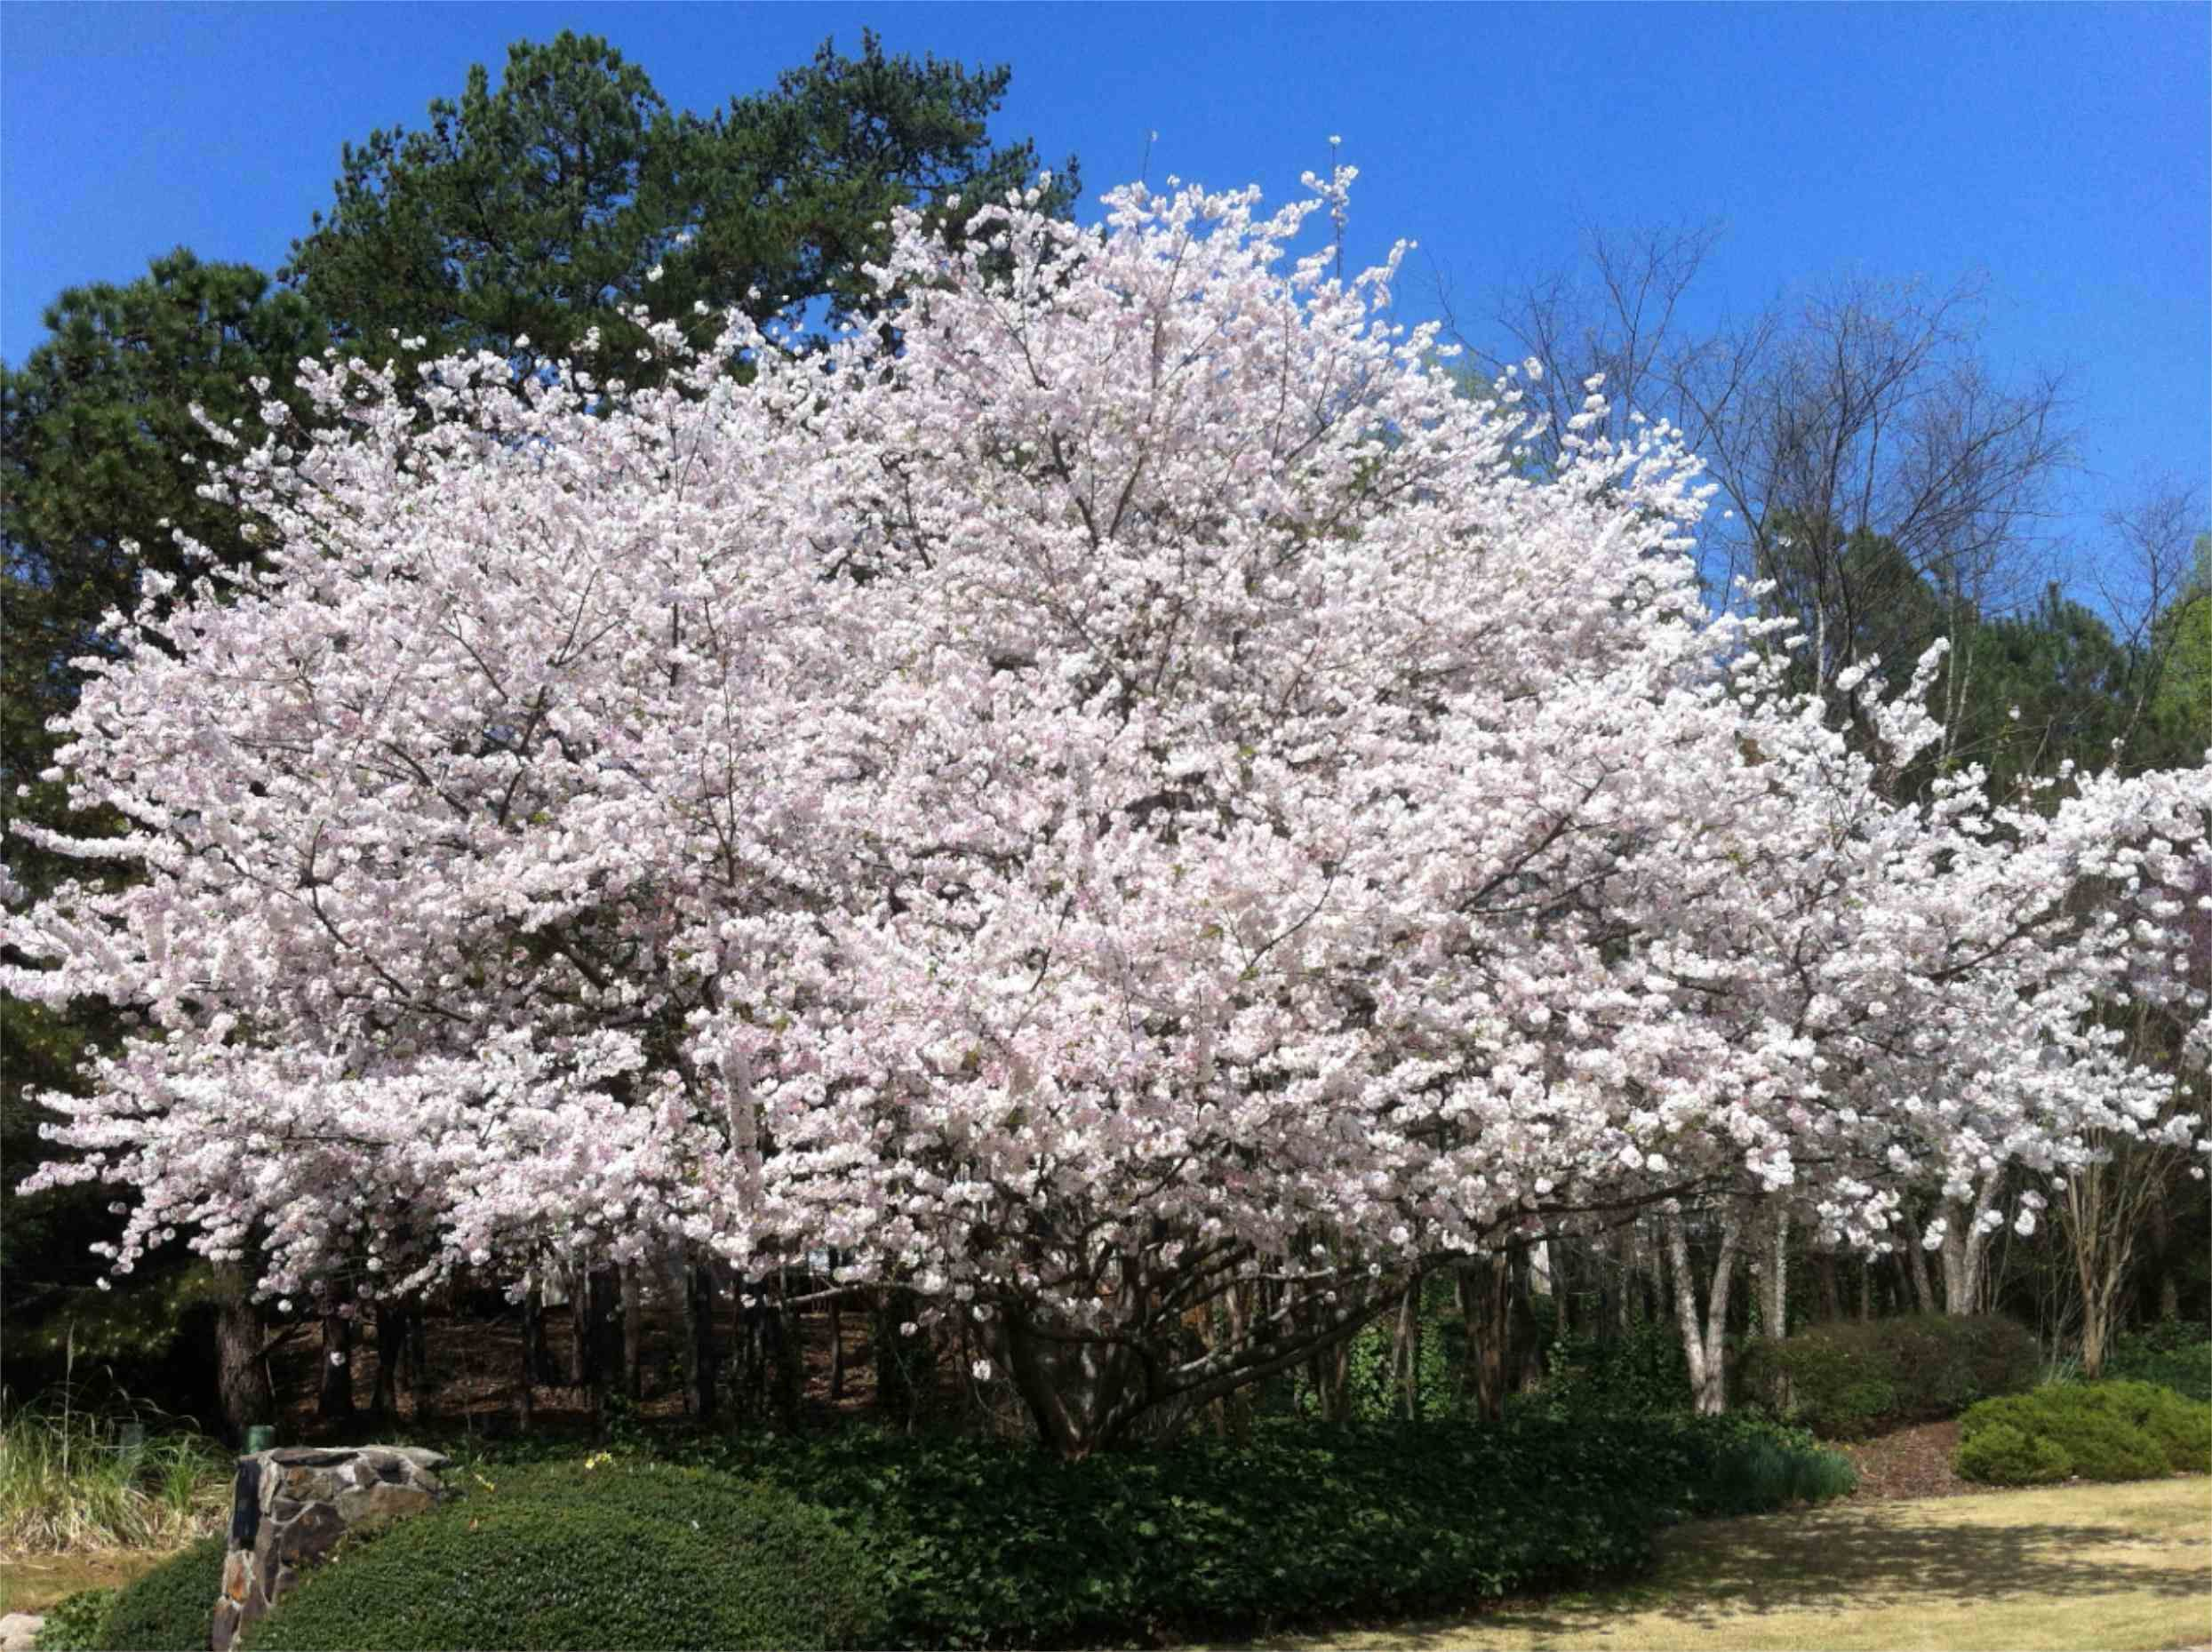 Yoshino Cherry Tree Is Common In The Georgia Landscape The Yoshino Grows A Bit Larger And Has White Or Pale Pink Blooms In The Spring A Souther Agac Cicek